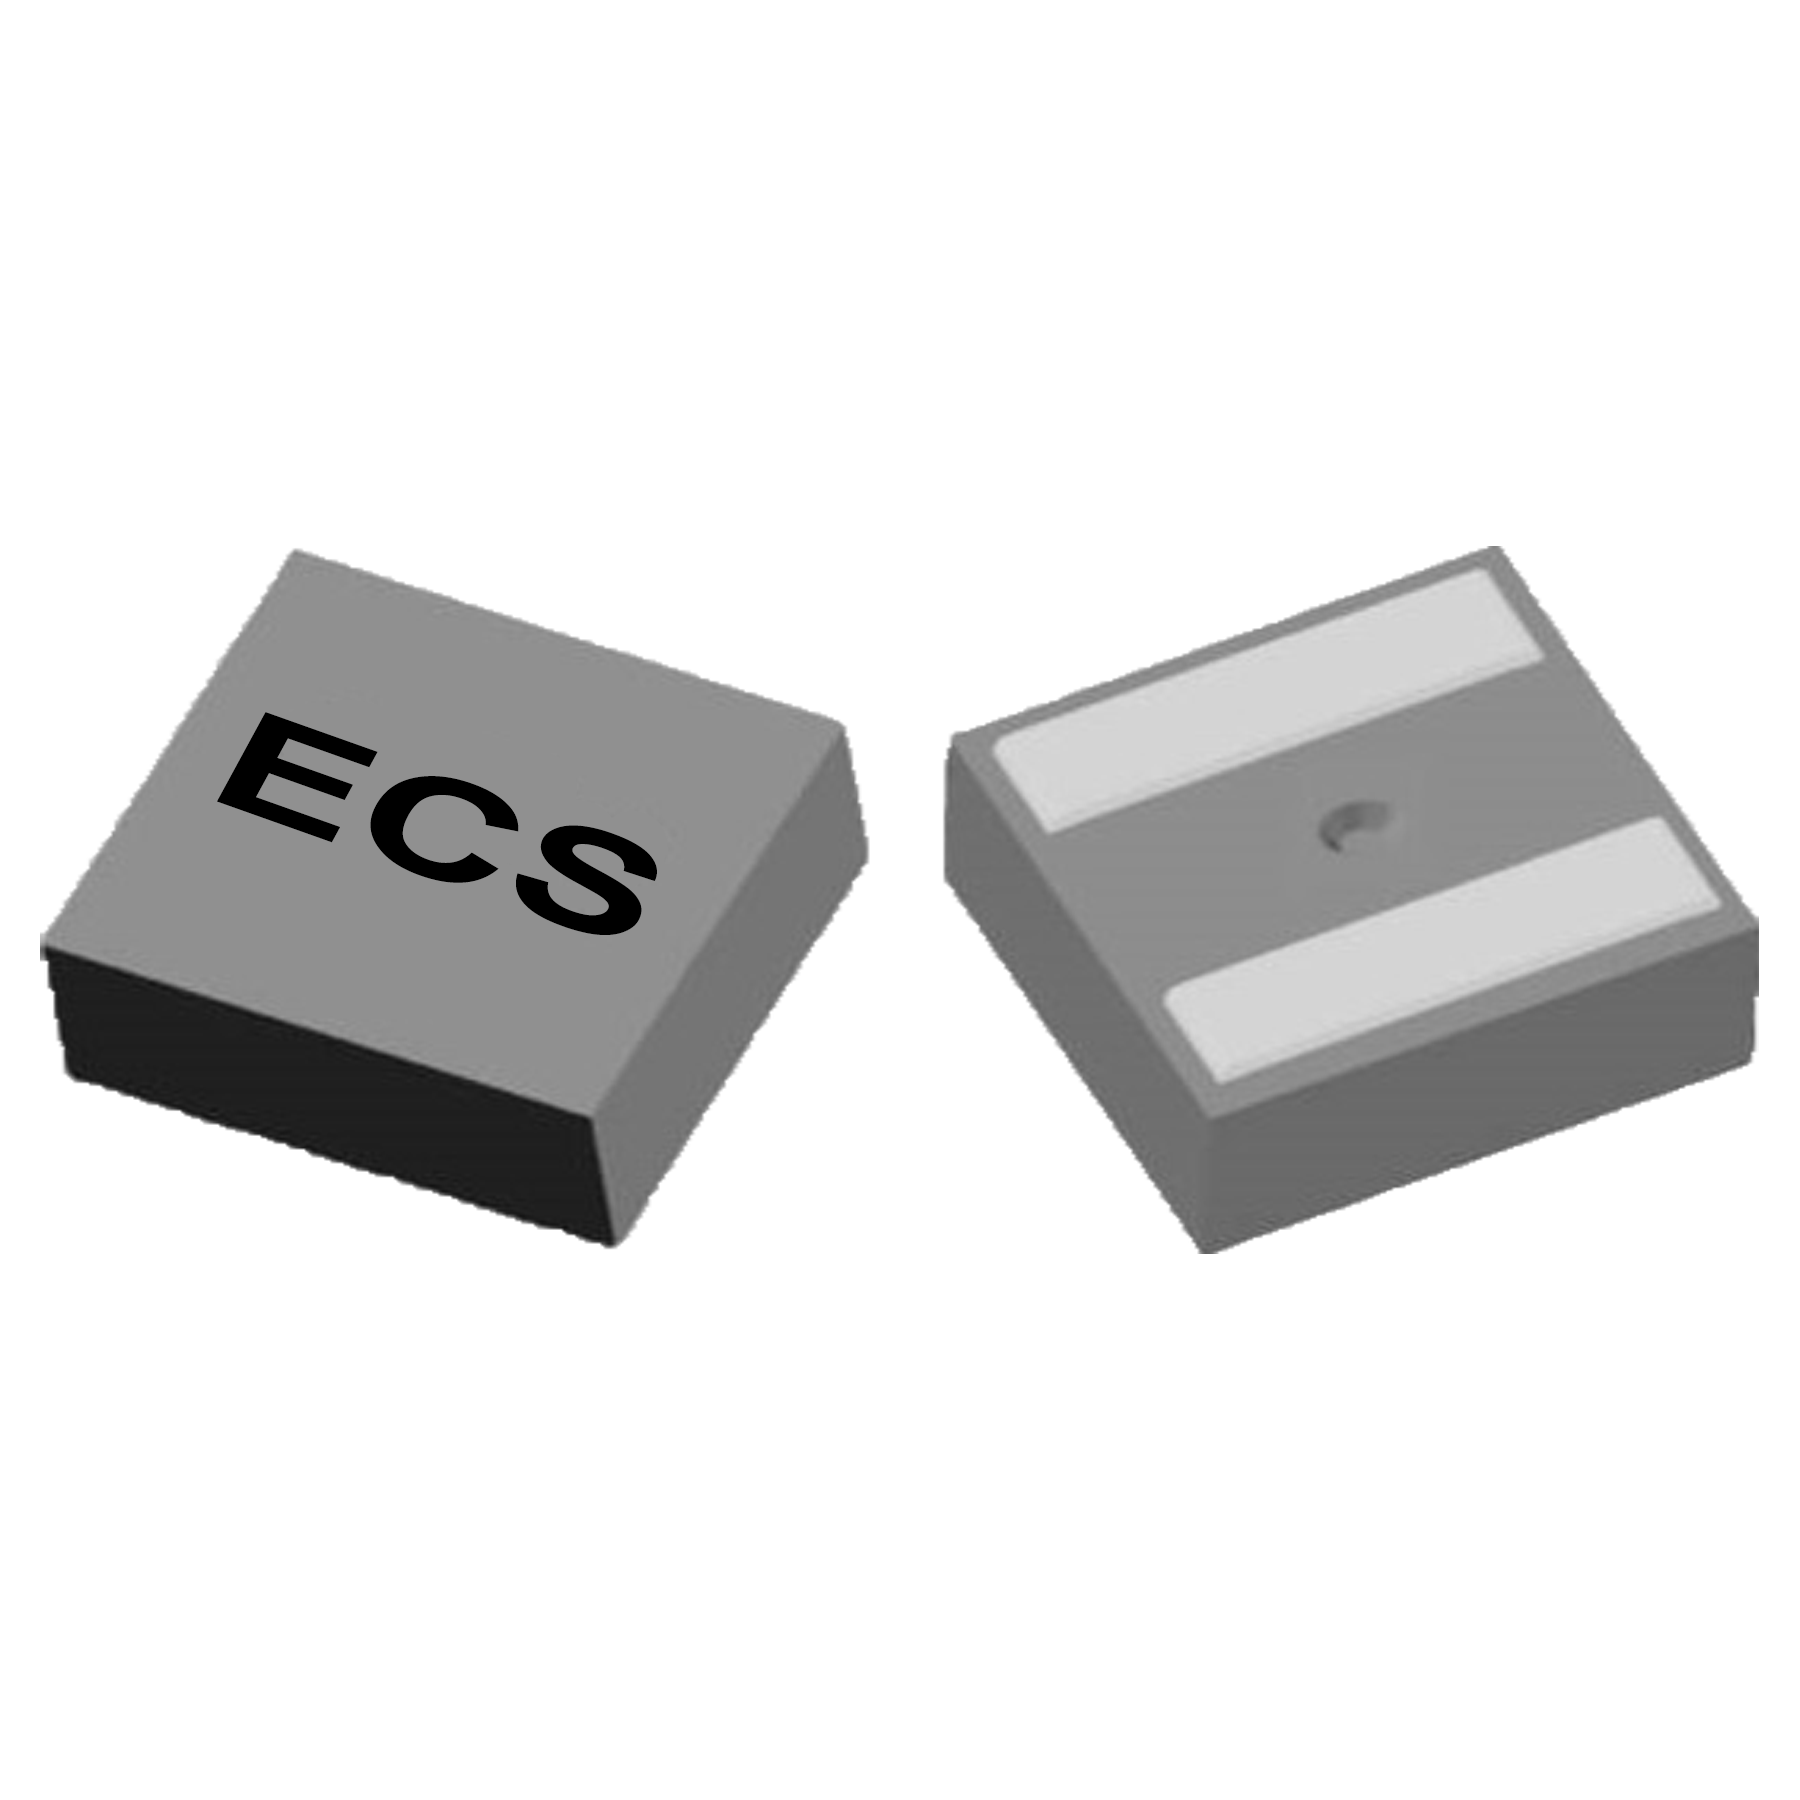 ecs hcmpi power inductor